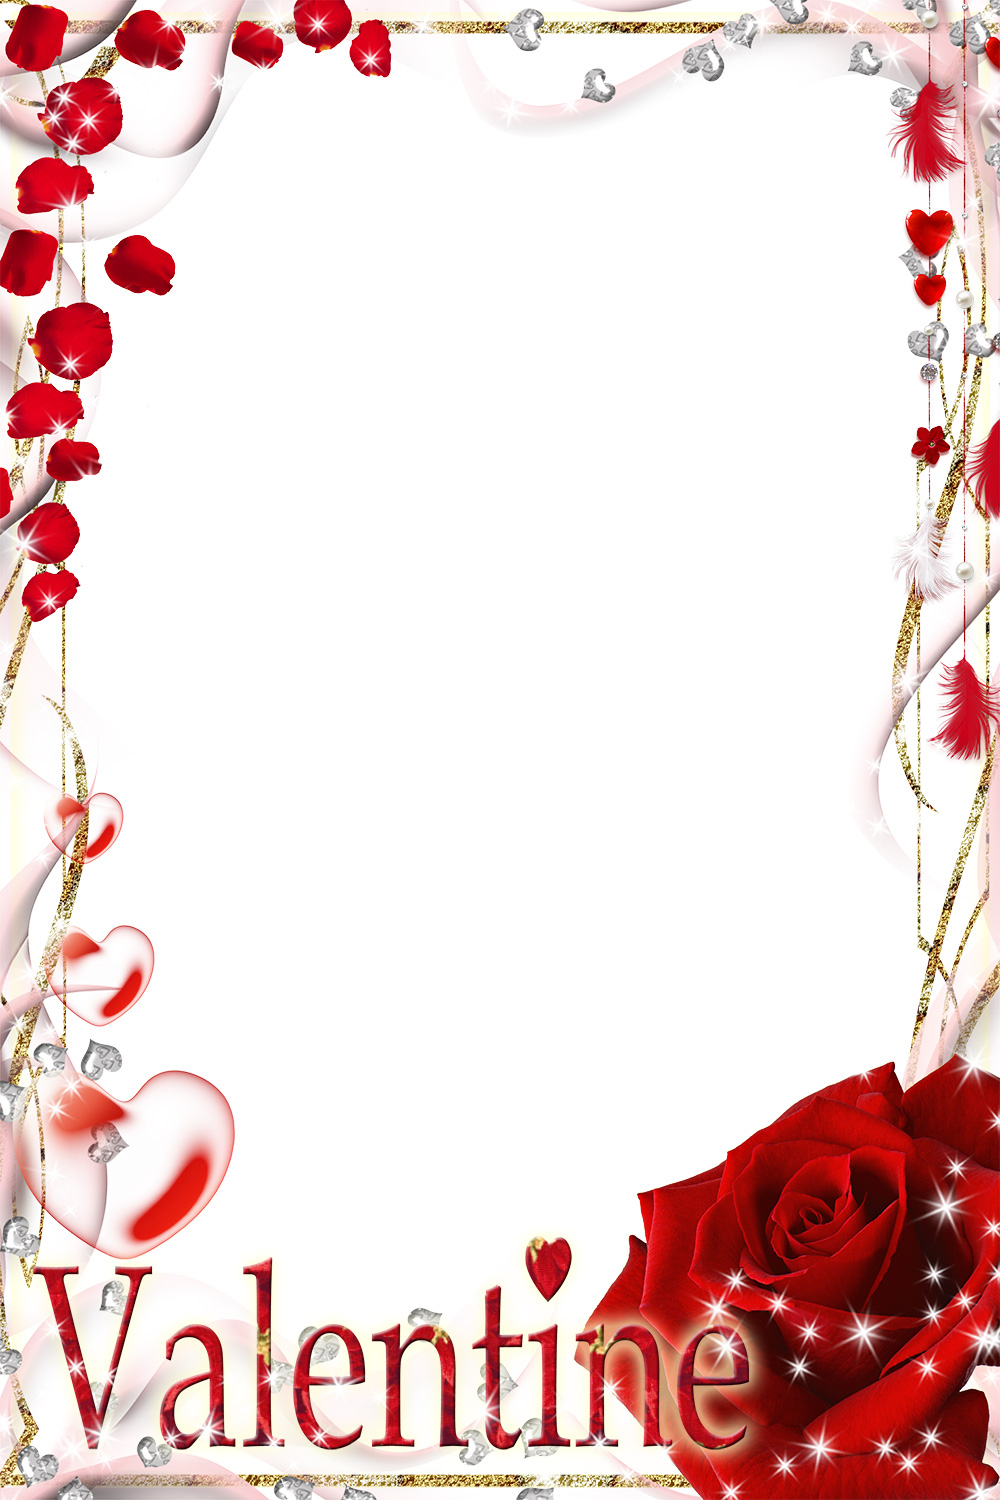 Happy Valentine\'s Day Photo Frames Online - Loonapix.com (60+ frames)